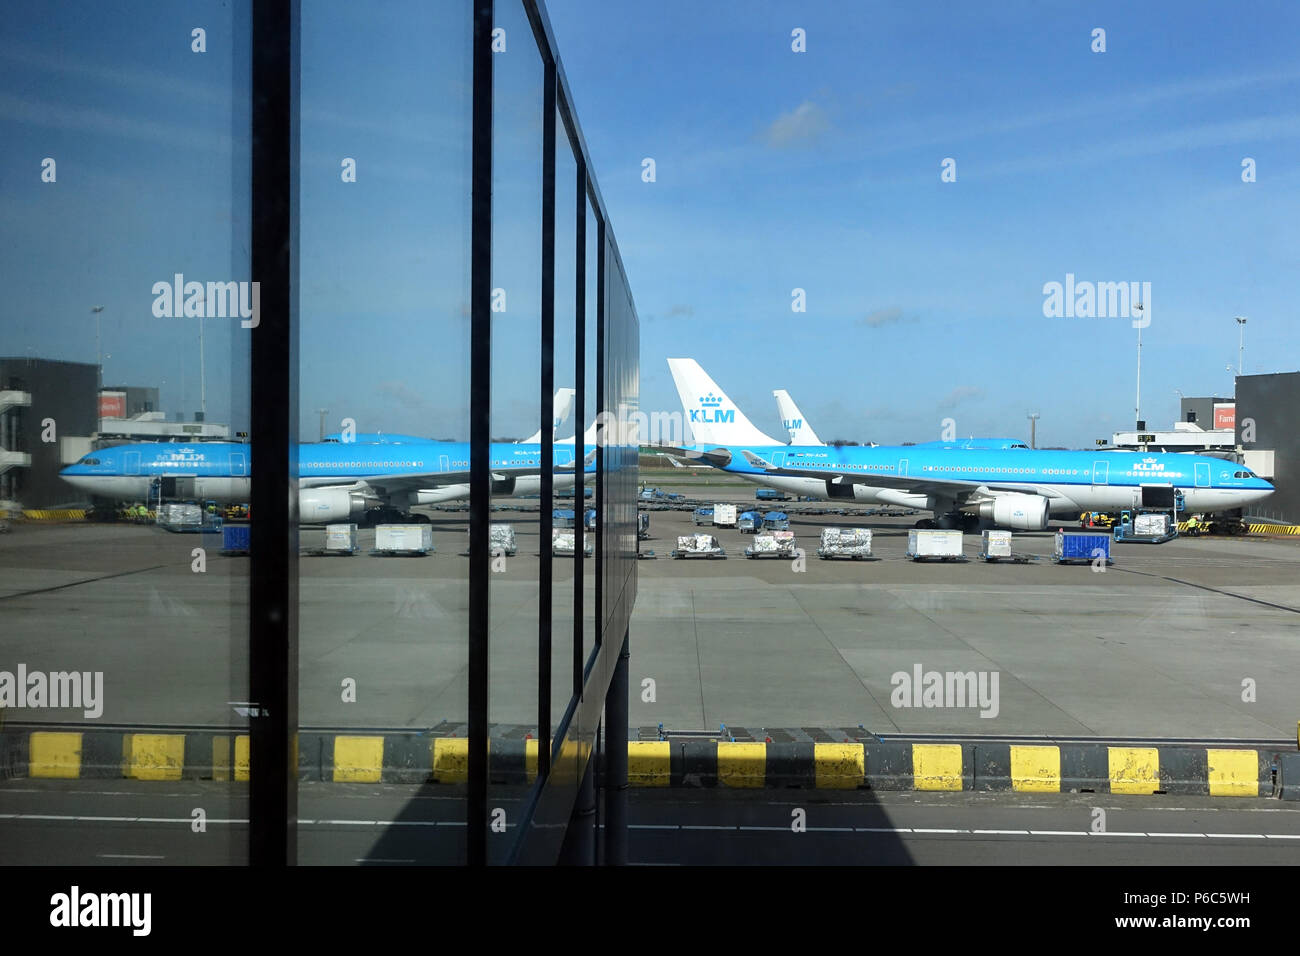 Amsterdam, Netherlands, KLM Airbus A330 on the apron of Schiphol Airport - Stock Image